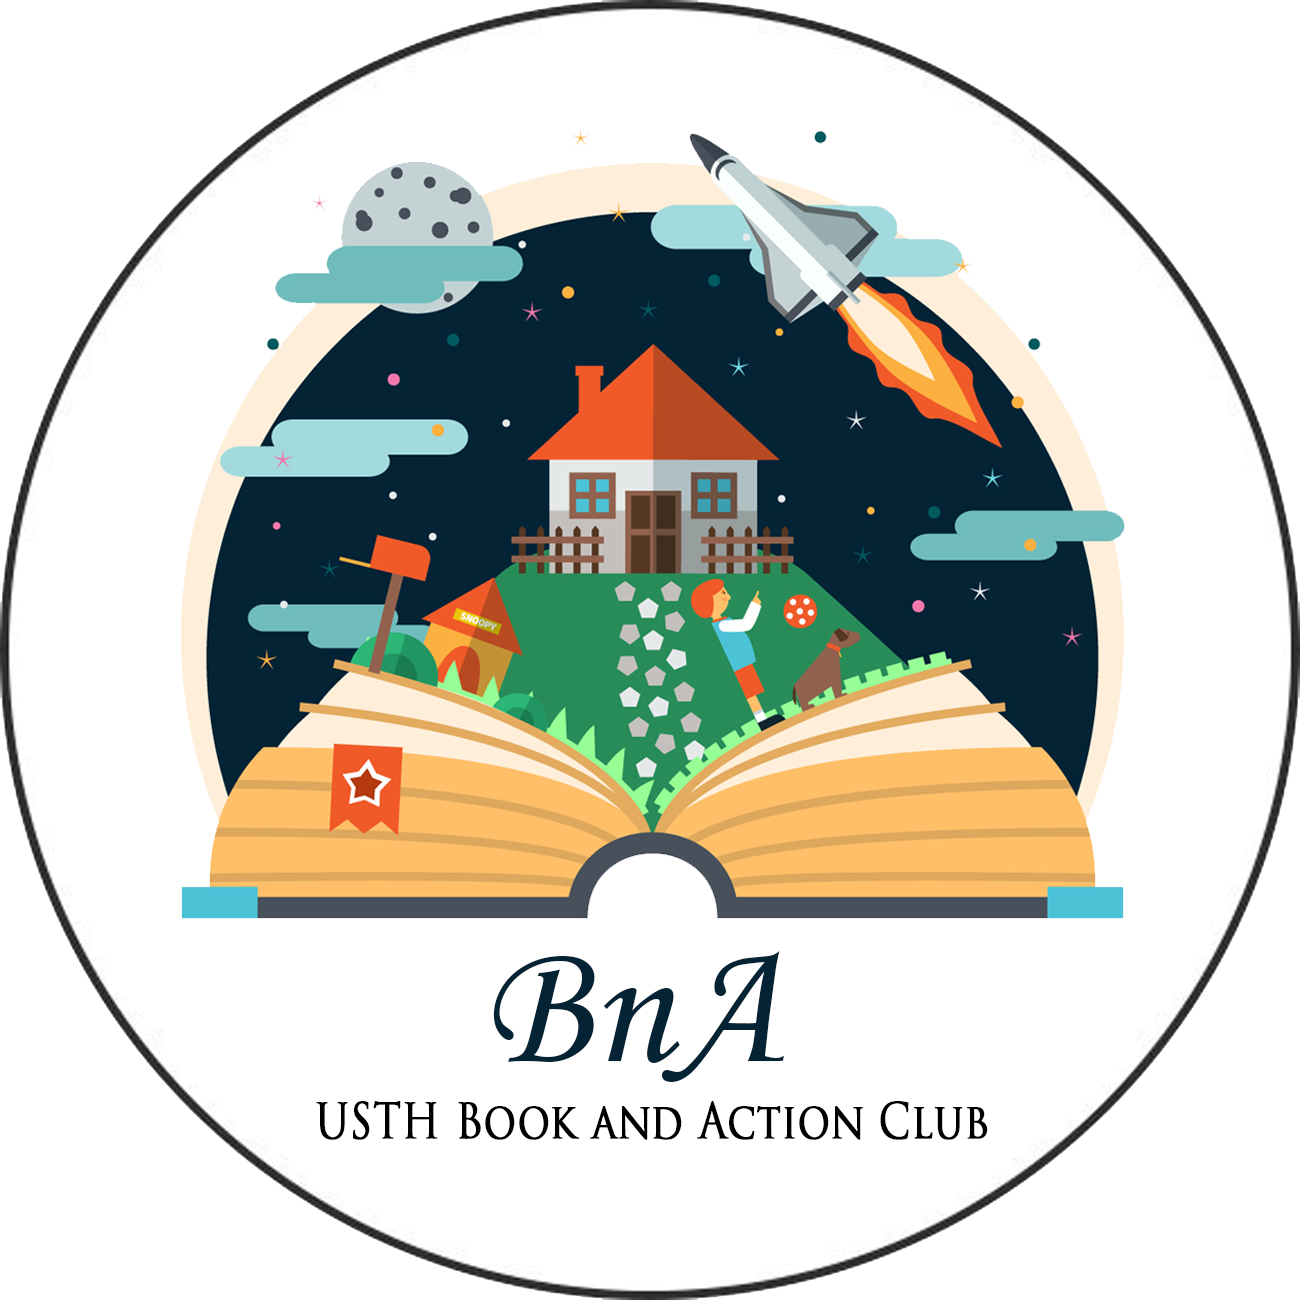 BnA - Book and Action Club